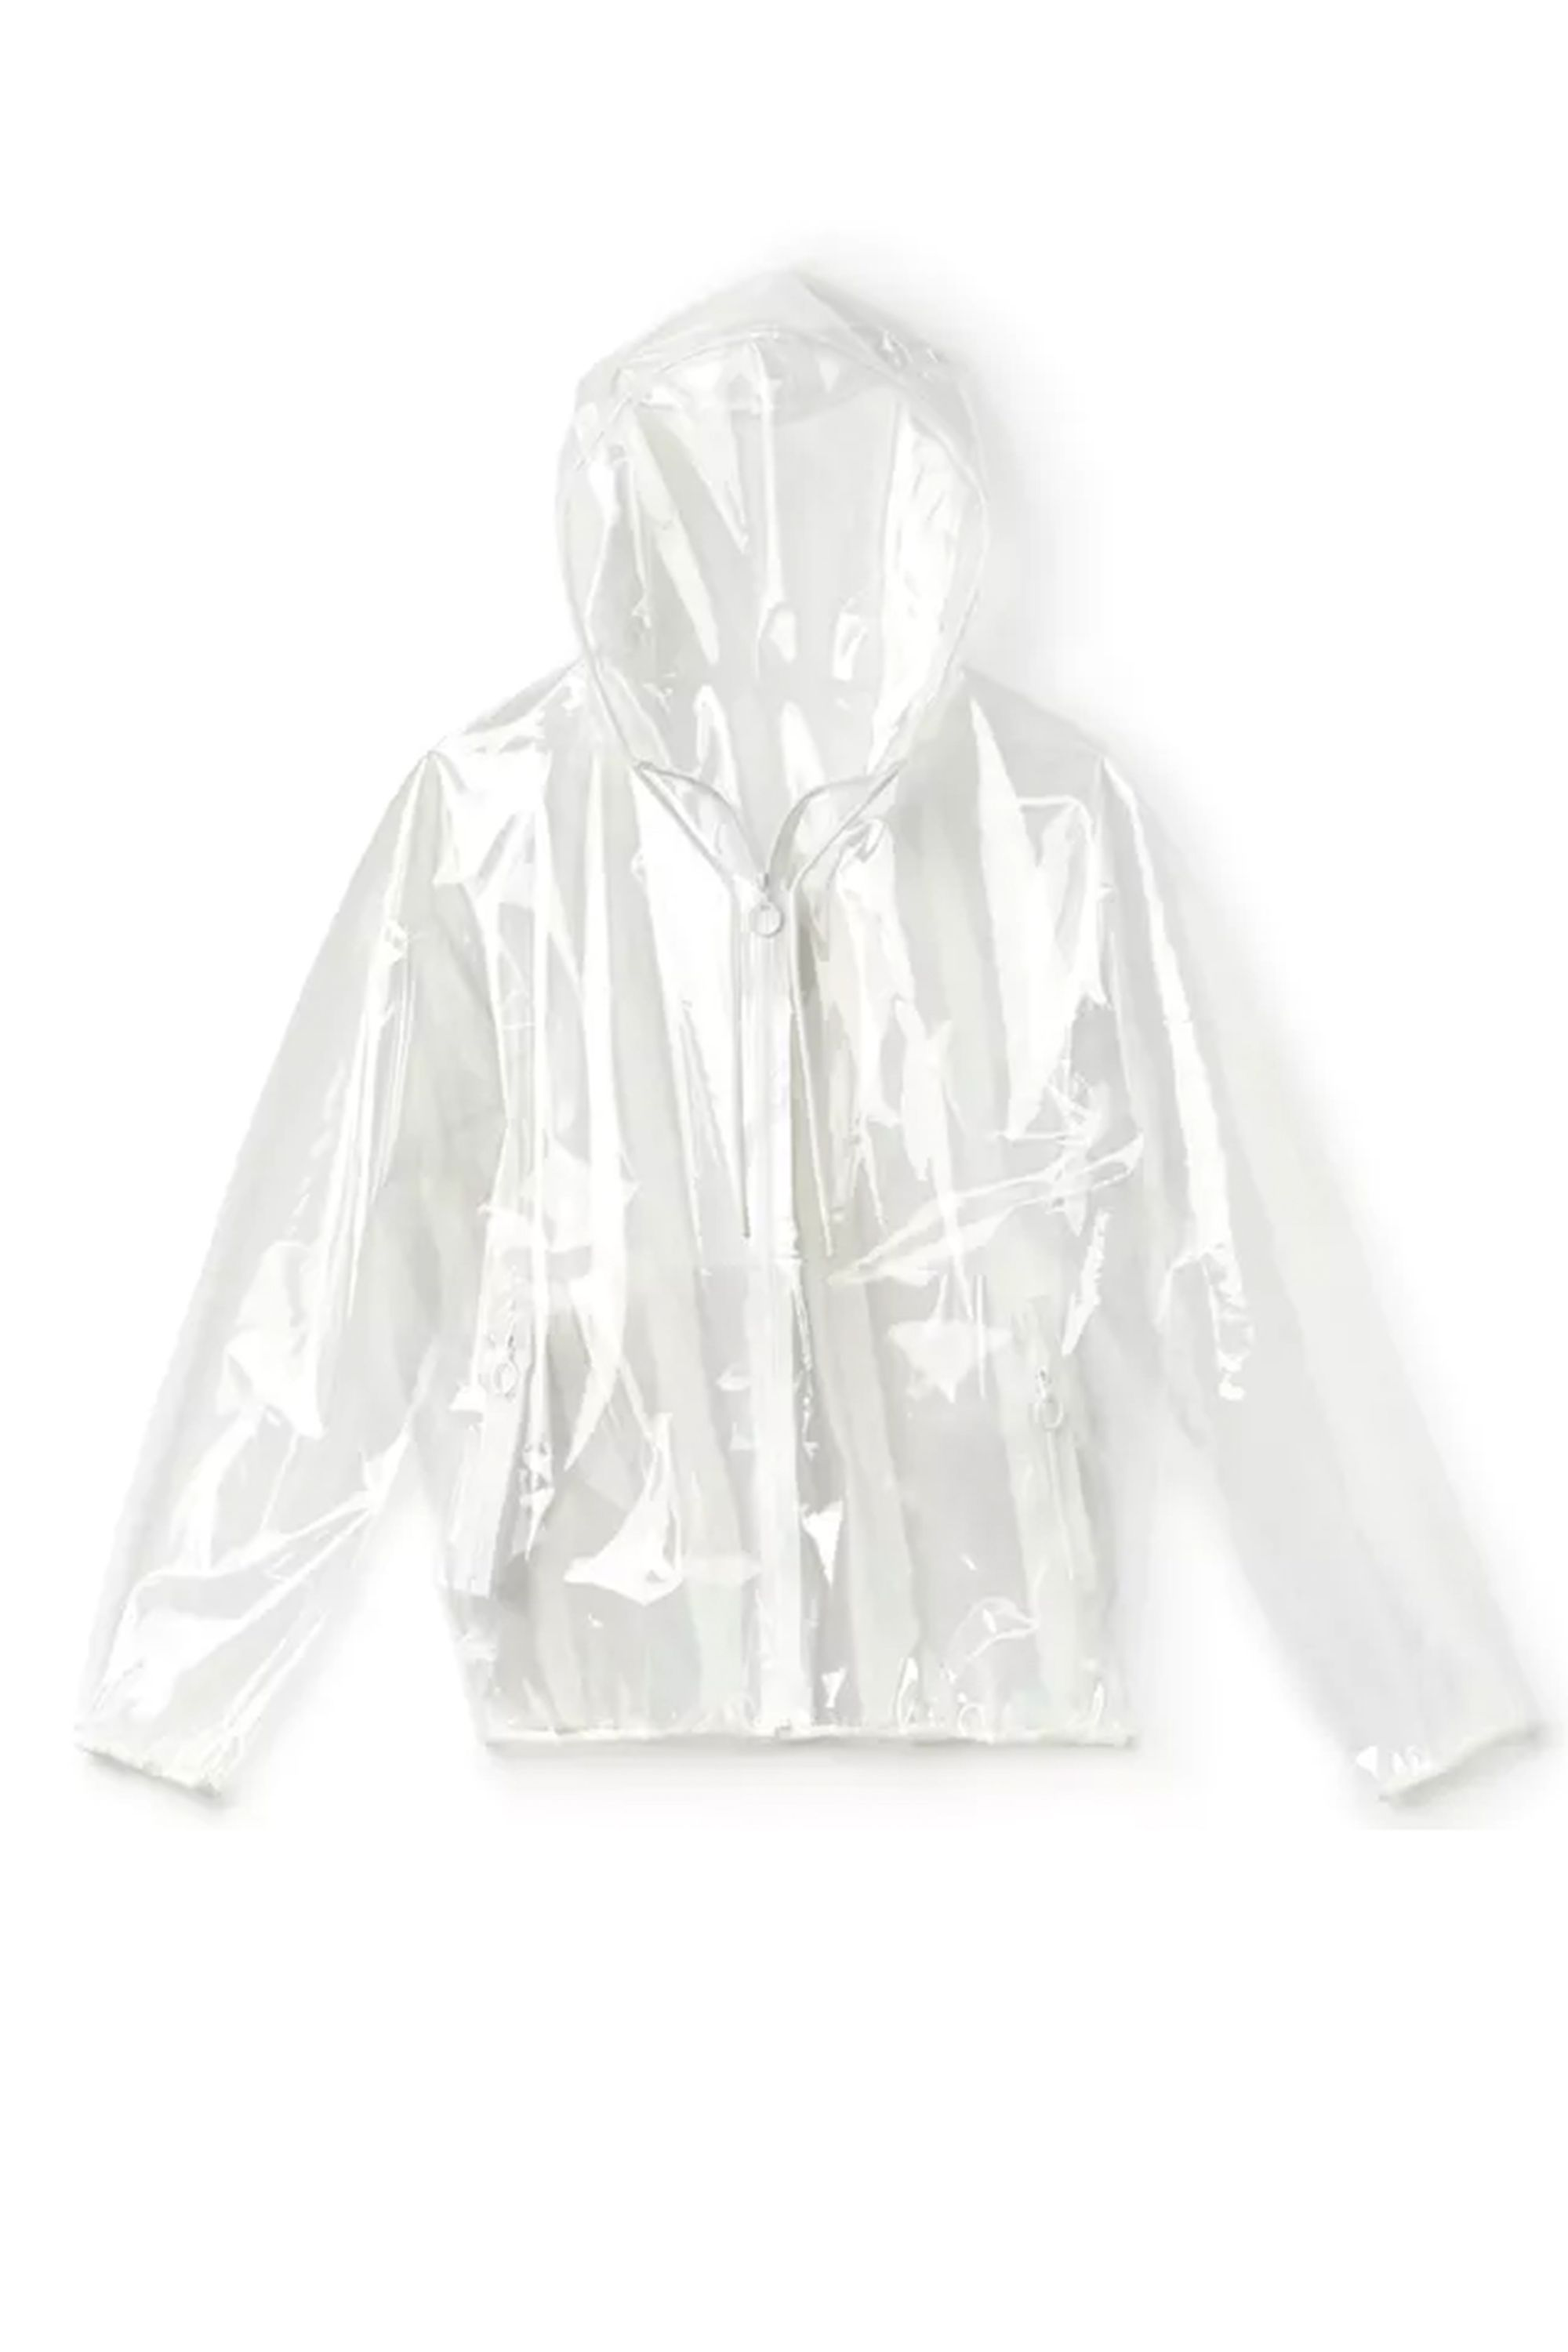 "<p>Lacoste Sheer Jacket, $475; <a href=""https://www.shopspring.com/products/53335237?query=raincoat&taxonomy=women"" data-tracking-id=""recirc-text-link"">shopspring.com</a></p>"